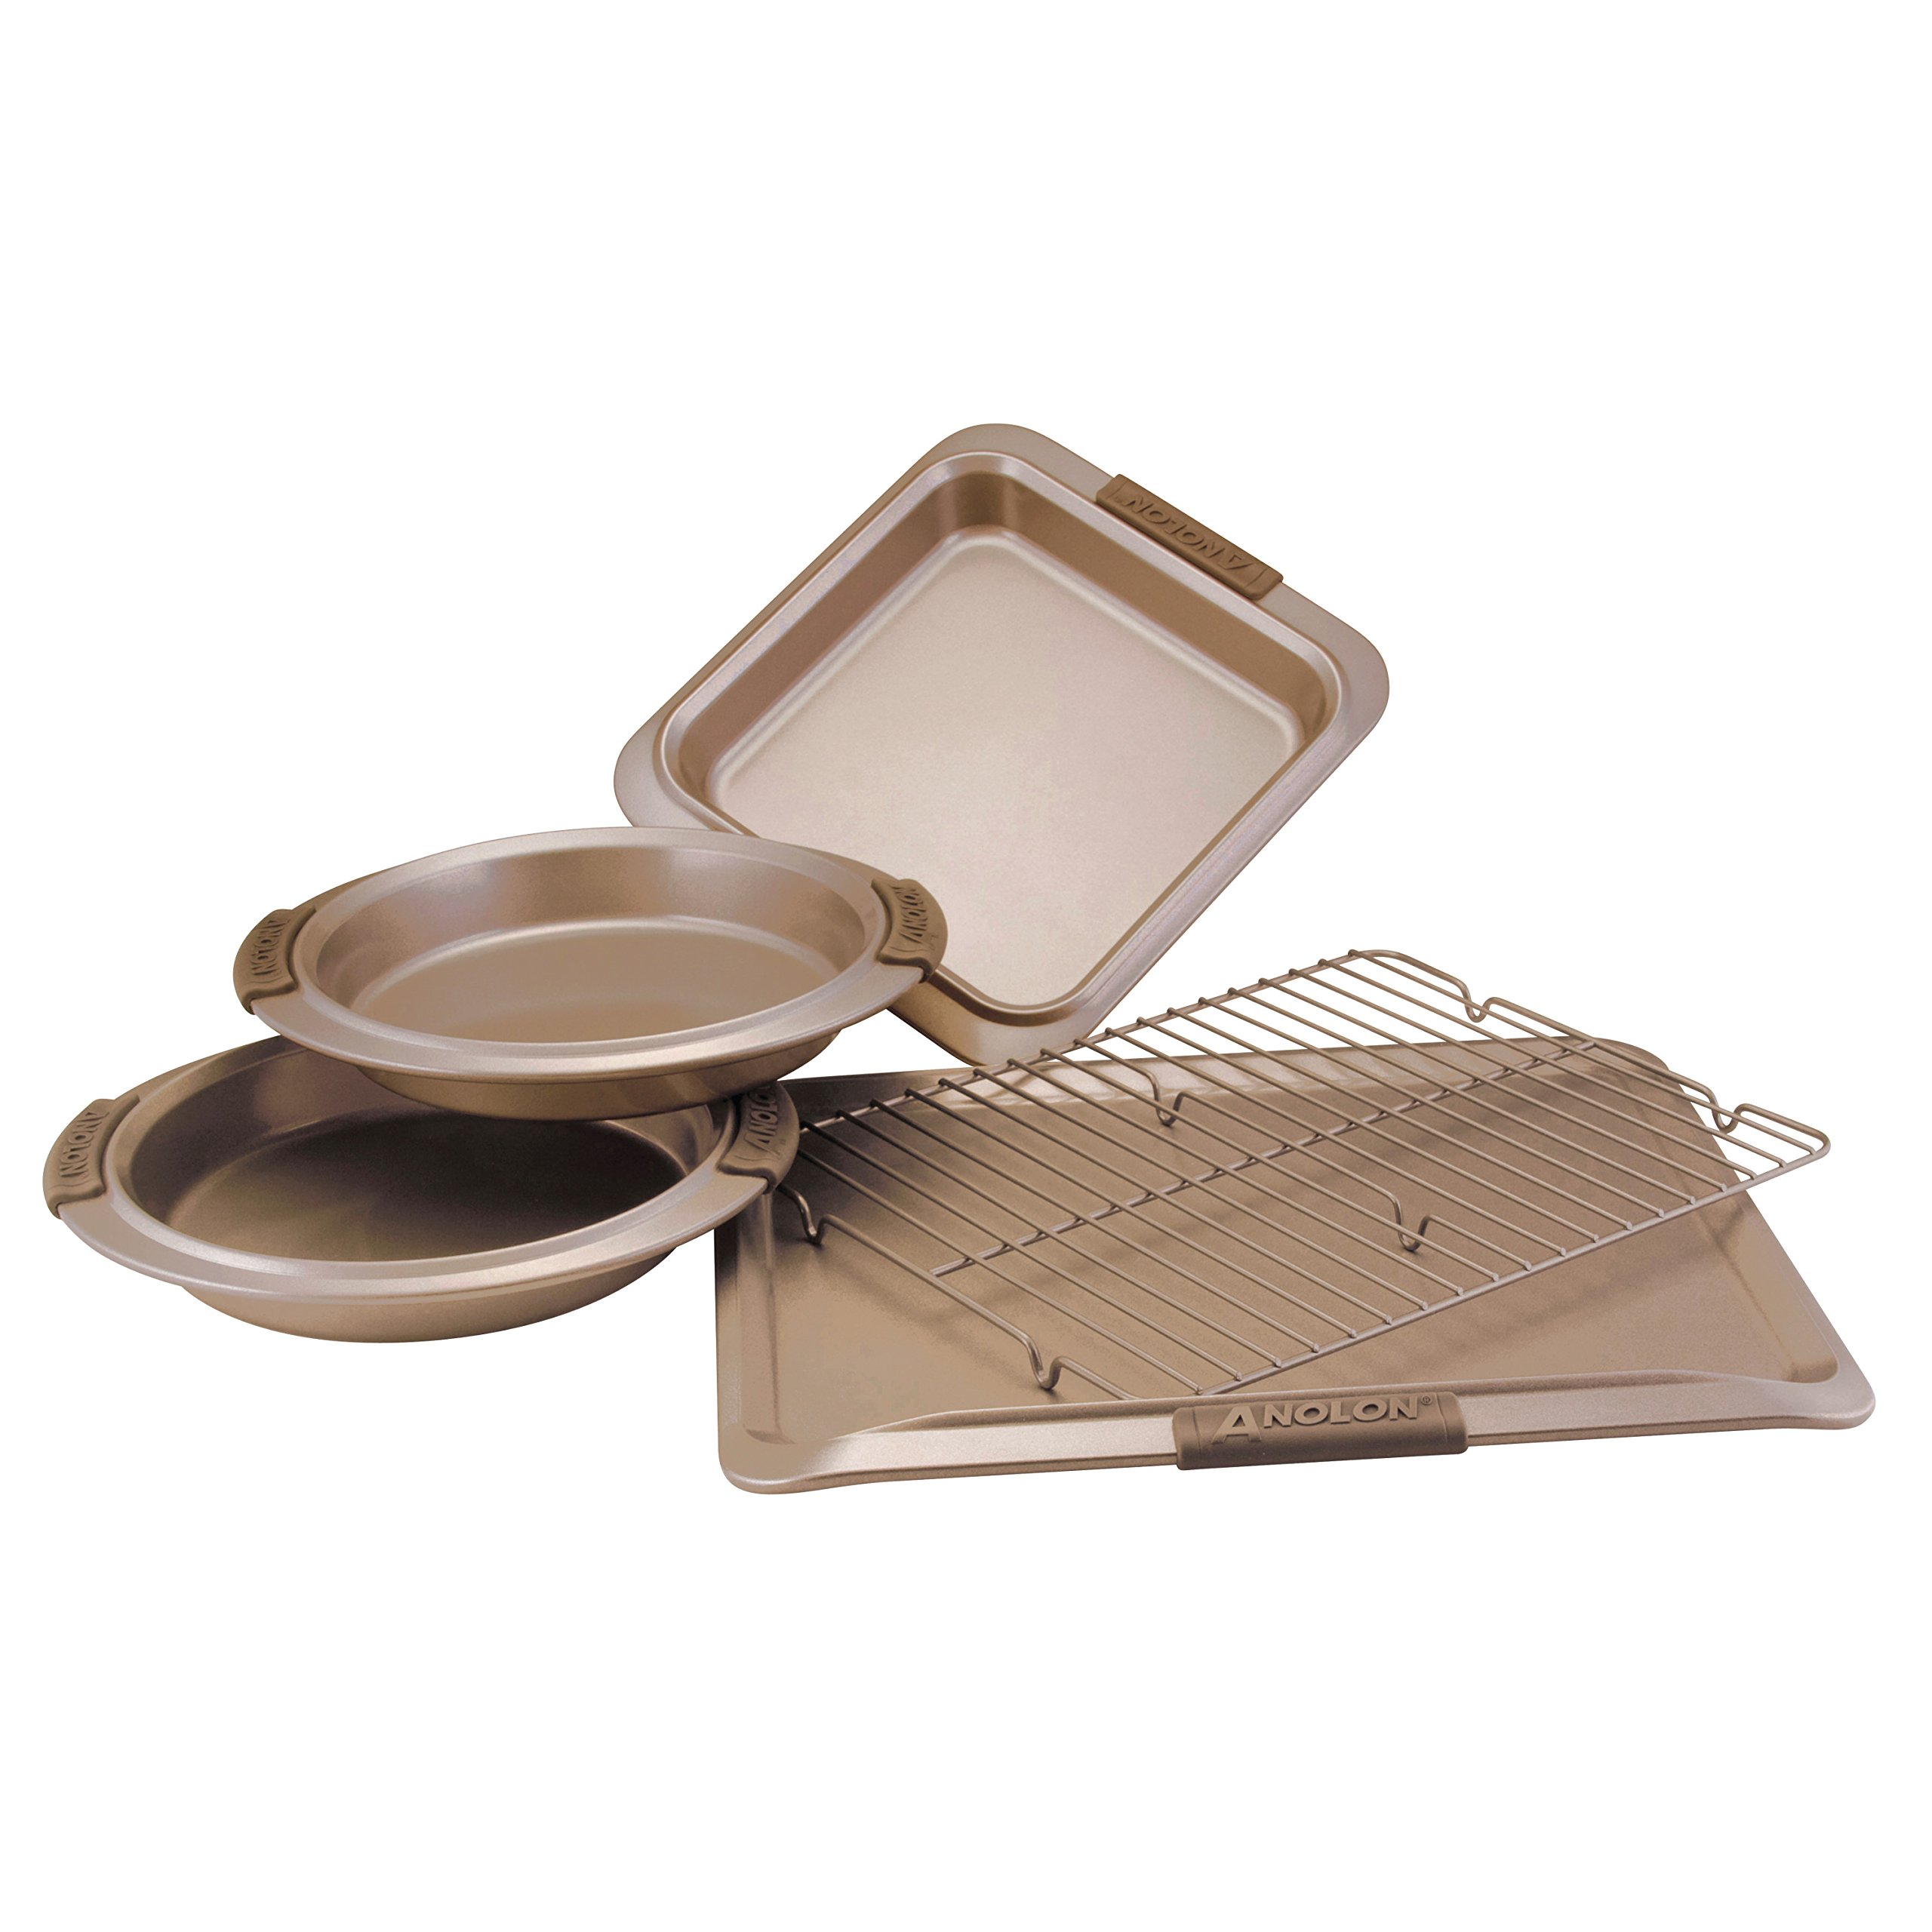 Anolon Advanced Bronze Nonstick Bakeware 5-Piece Bakeware Set with Silicone Grips by Anolon (Image #1)